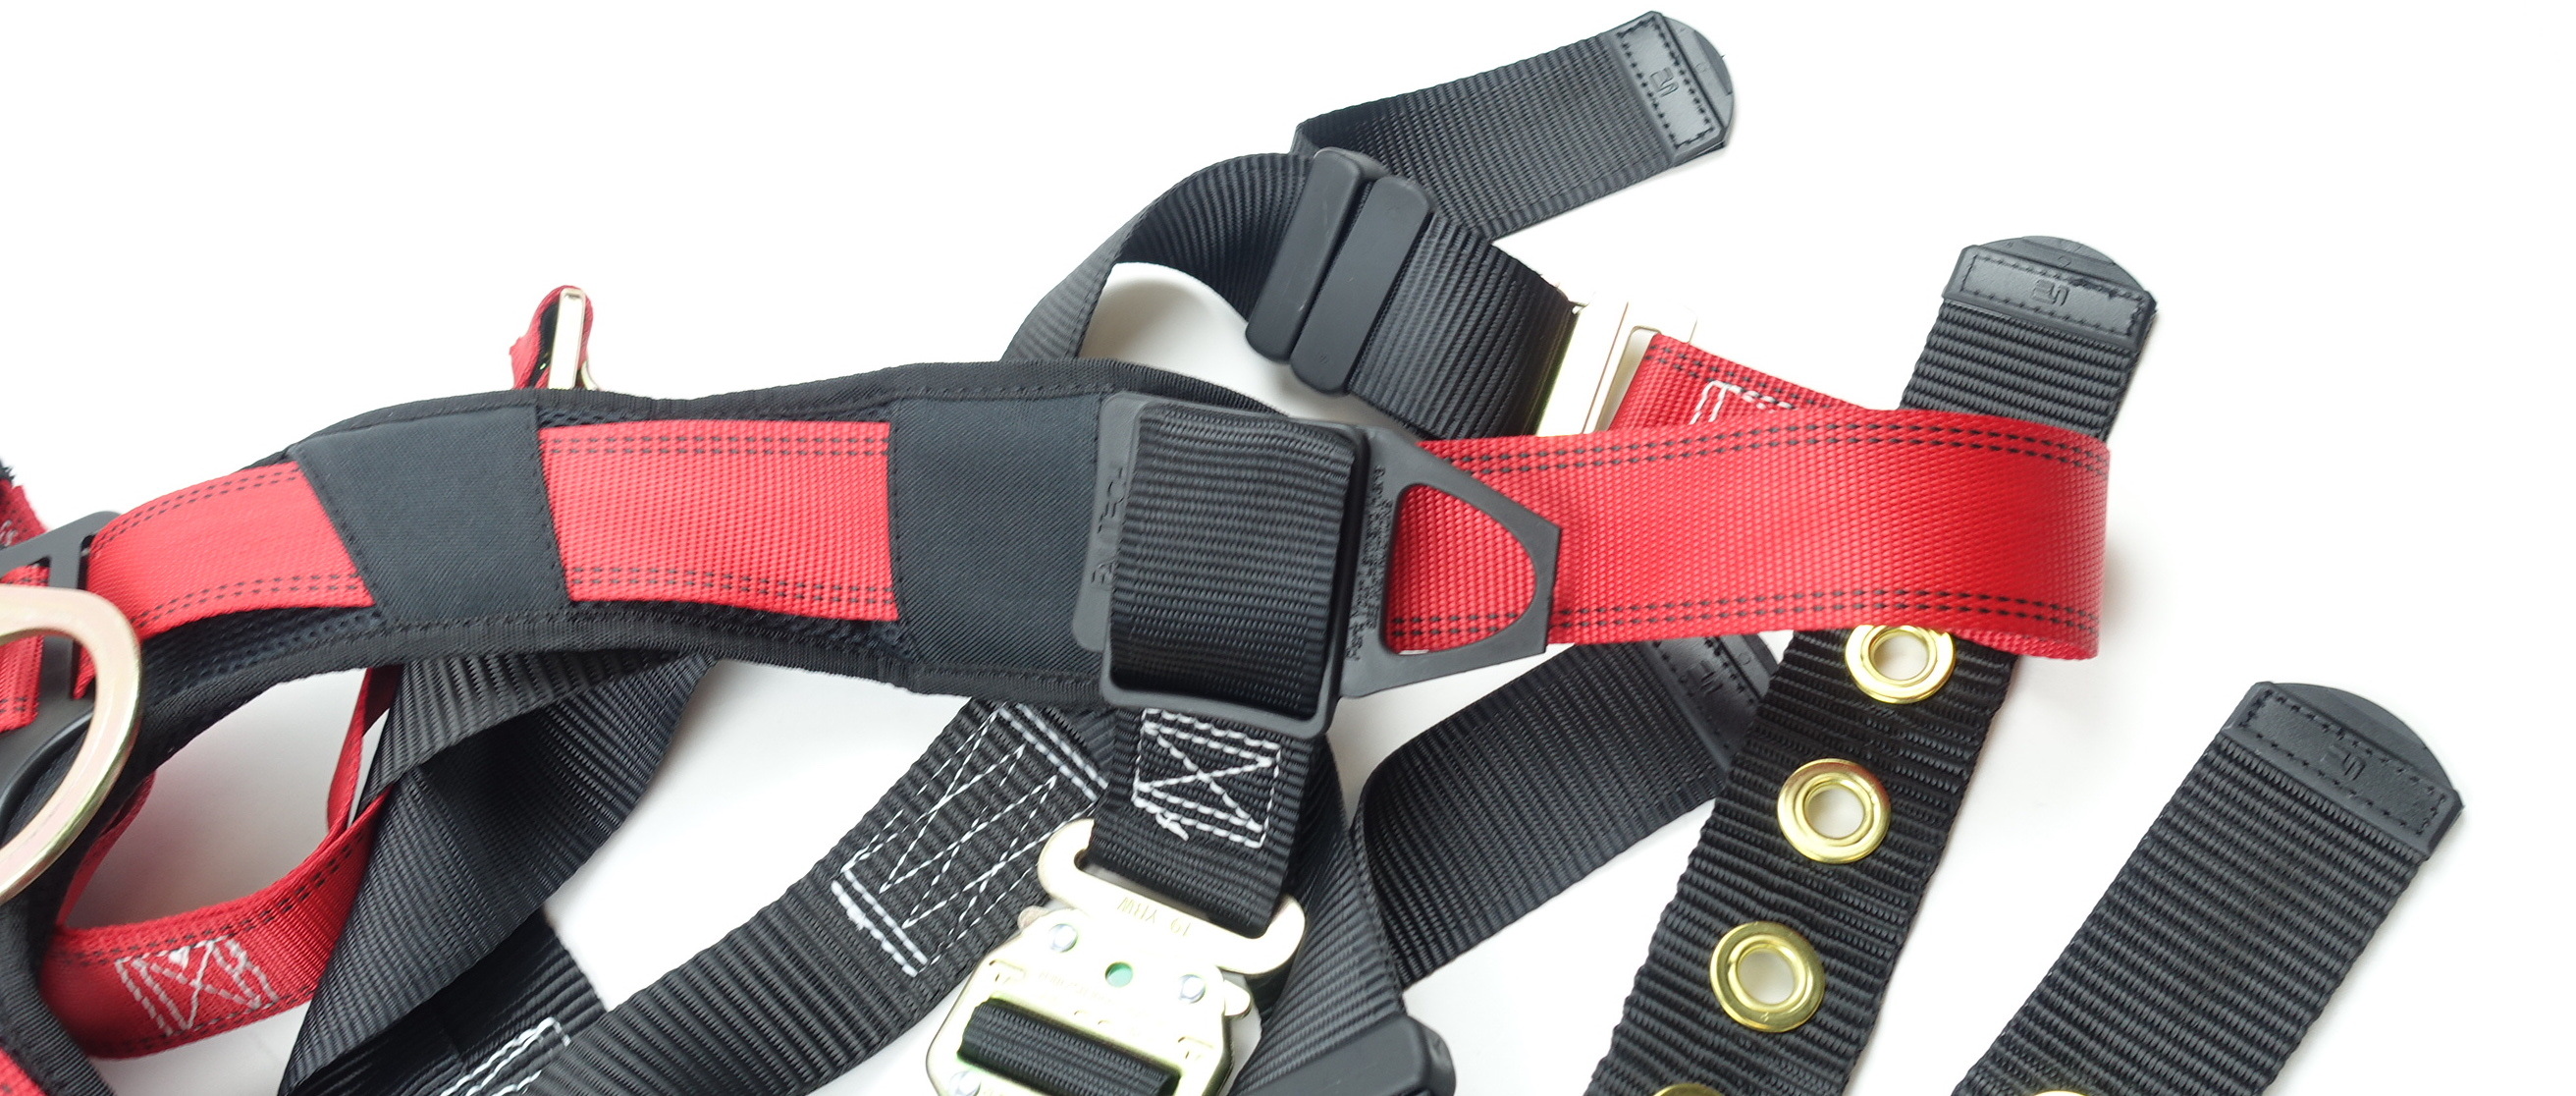 FallTech Fall Safety Harness L/XL Non-Belted Back D-Ring Tongue Buckle Legs - image 10